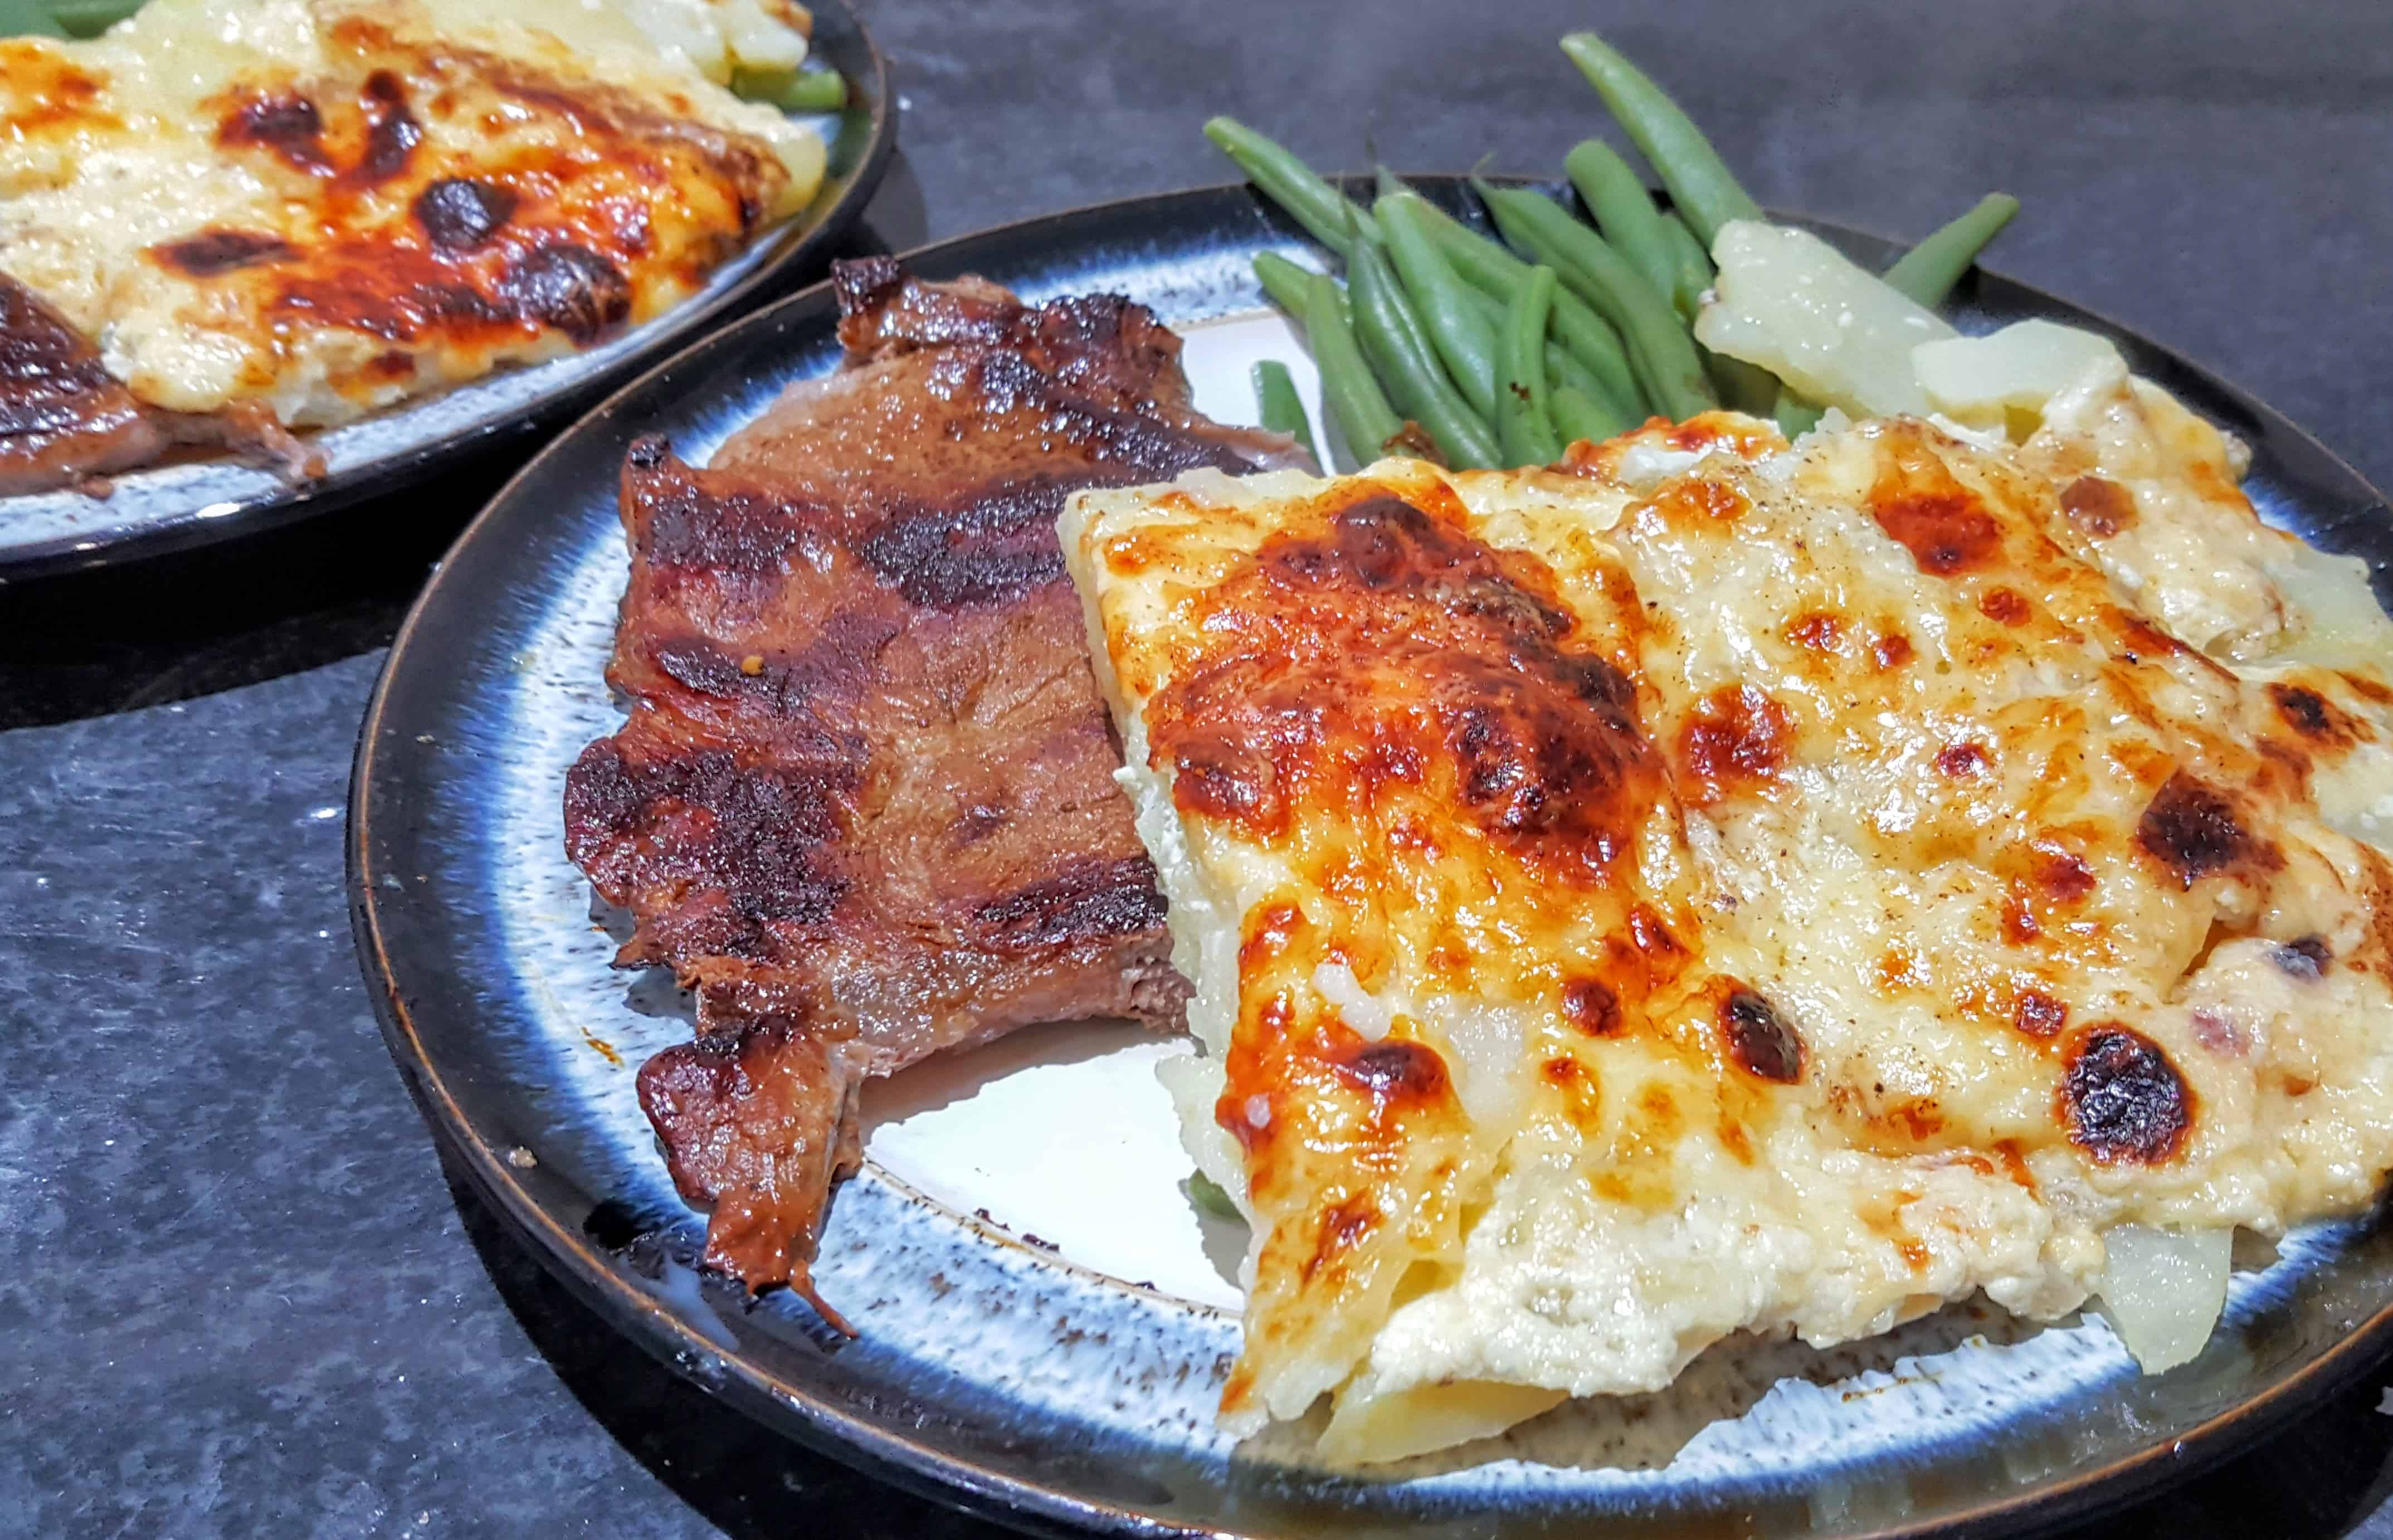 Slimming World Syn Free Delicious Dauphinoise Recipe – Serves 4